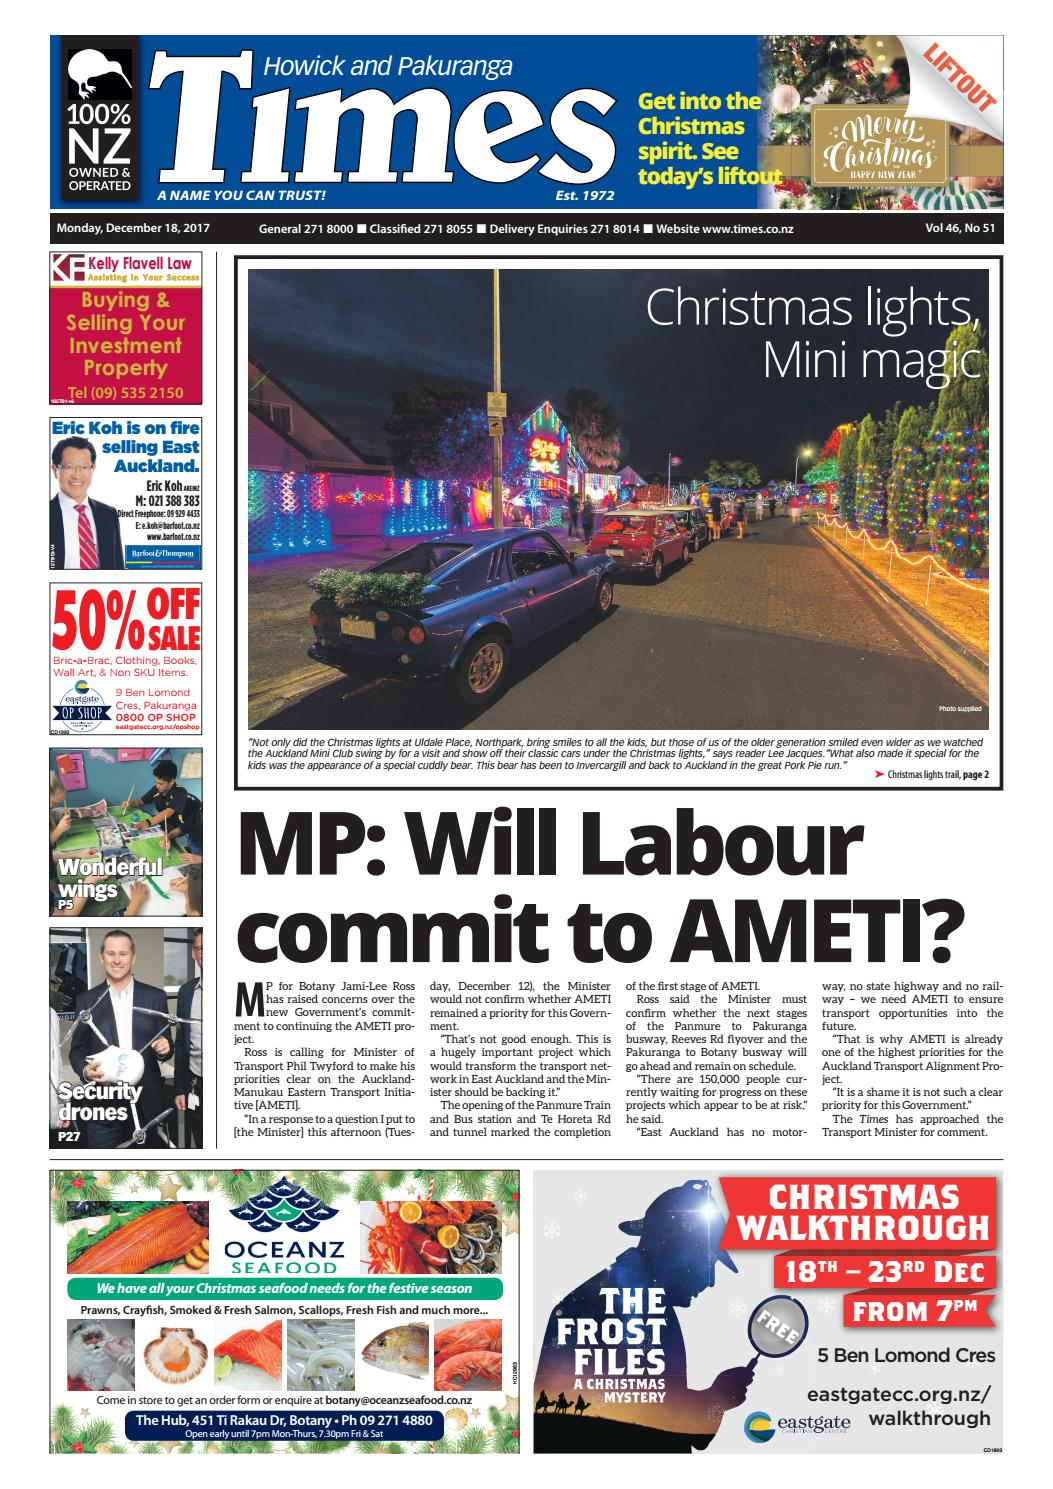 Howick and Pakuranga Times 18 December 2017 by Times Media